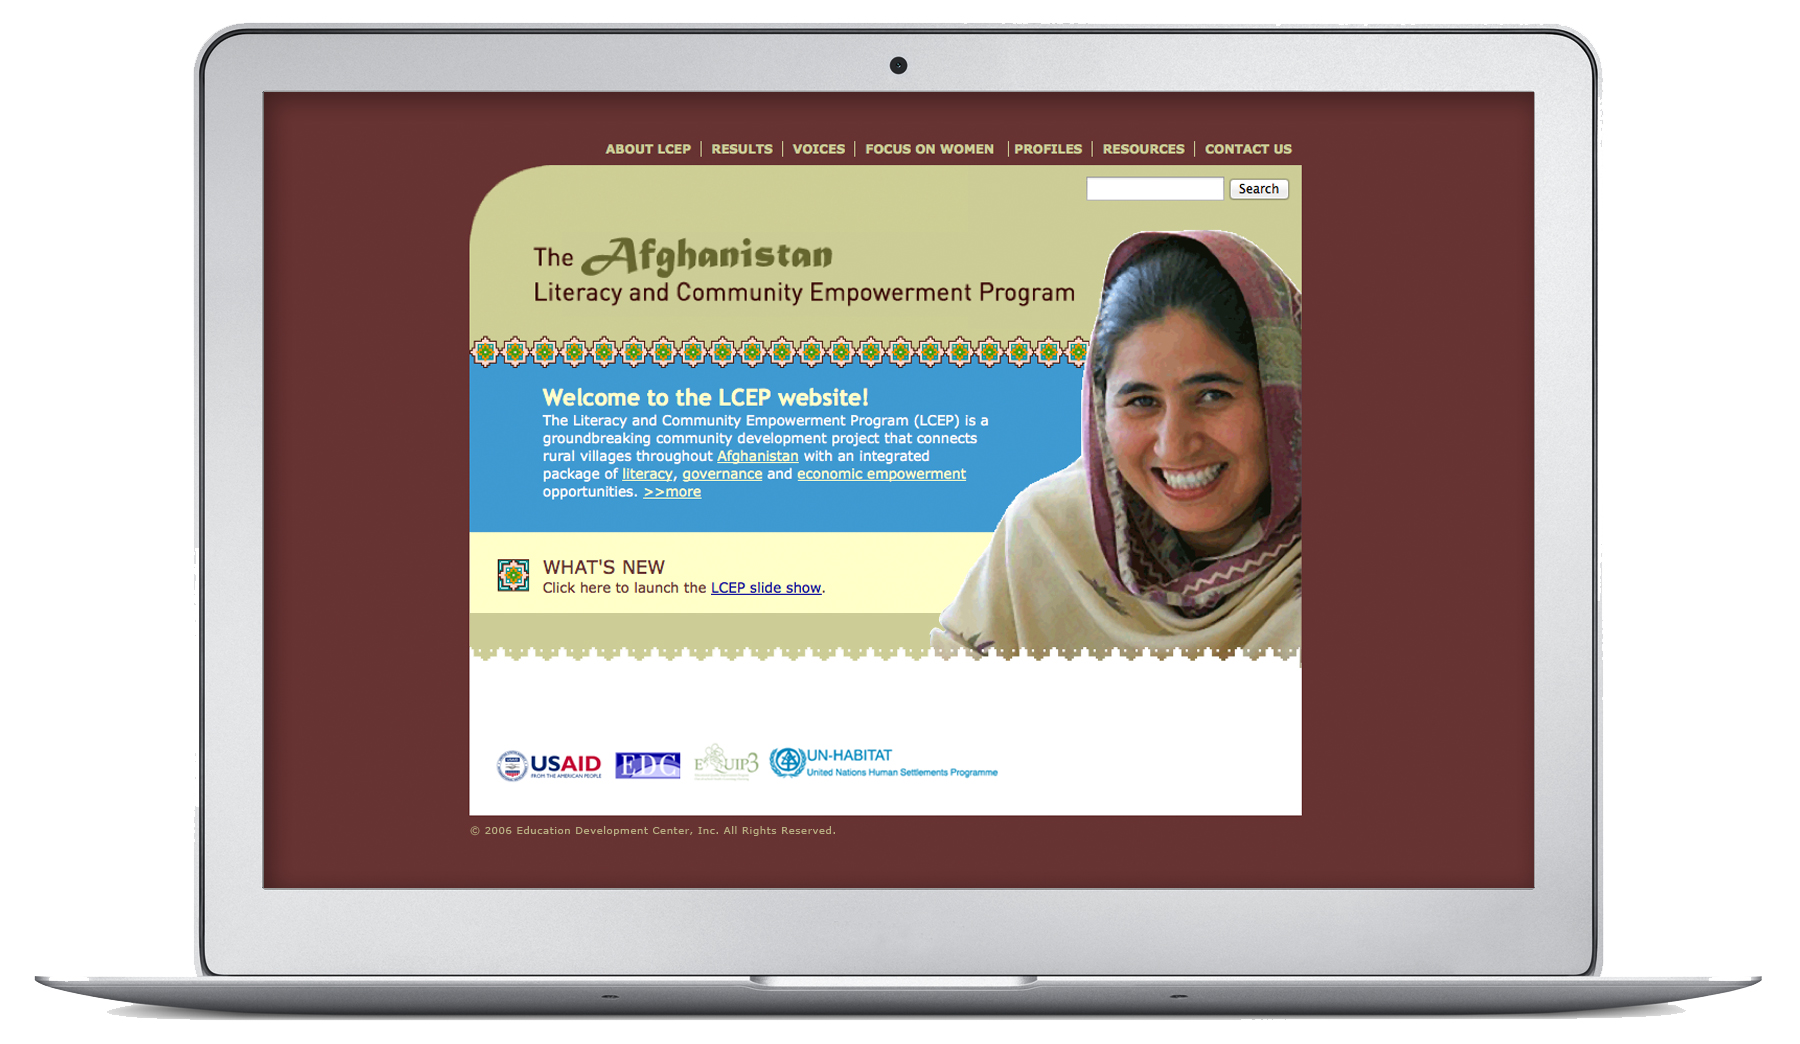 The Afghanistan Literacy and Community Empowerment Program